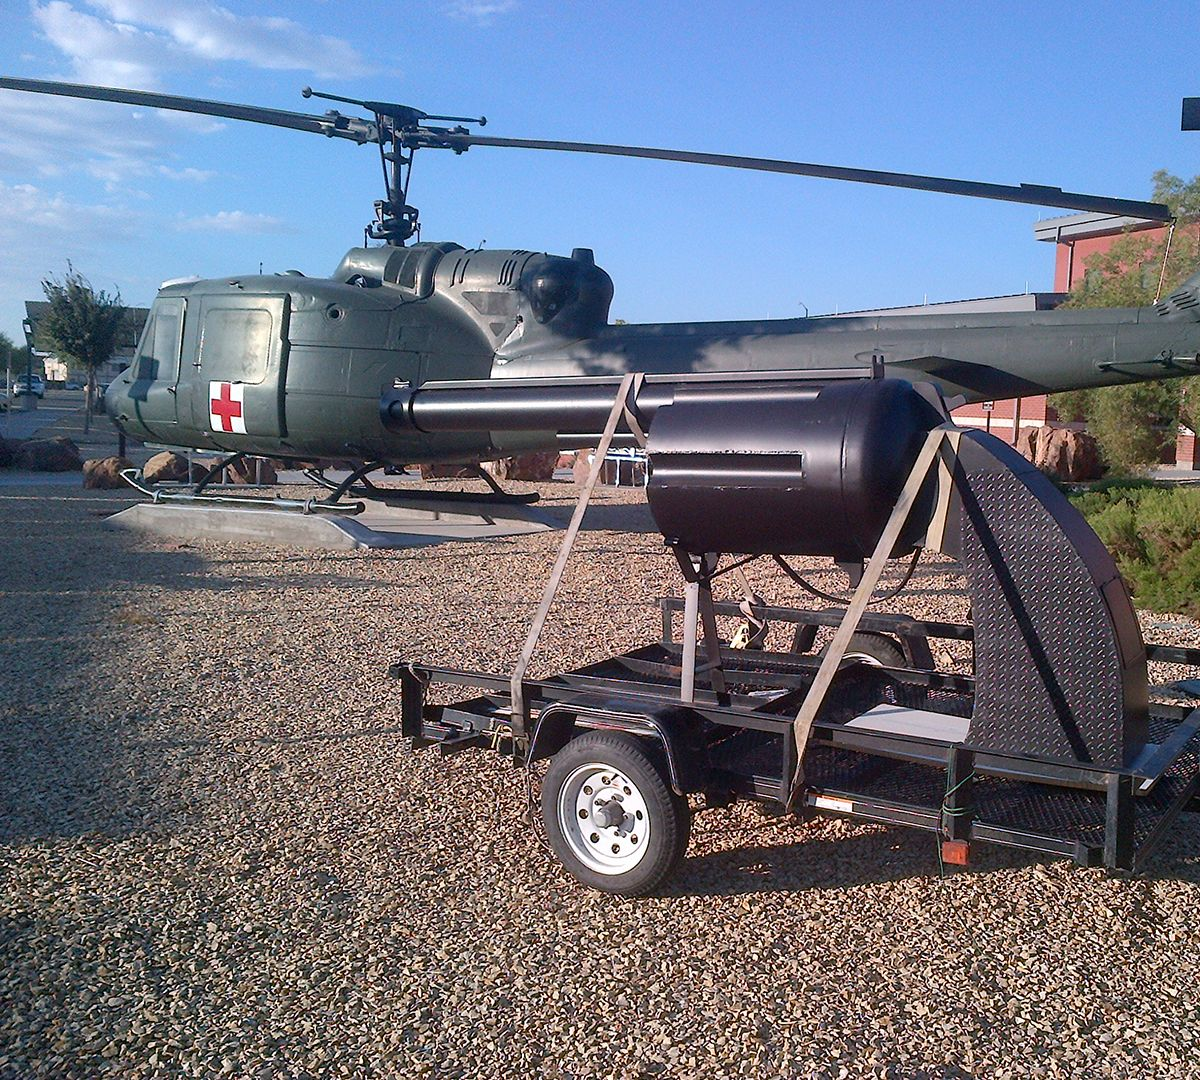 American Patriots Helicopter